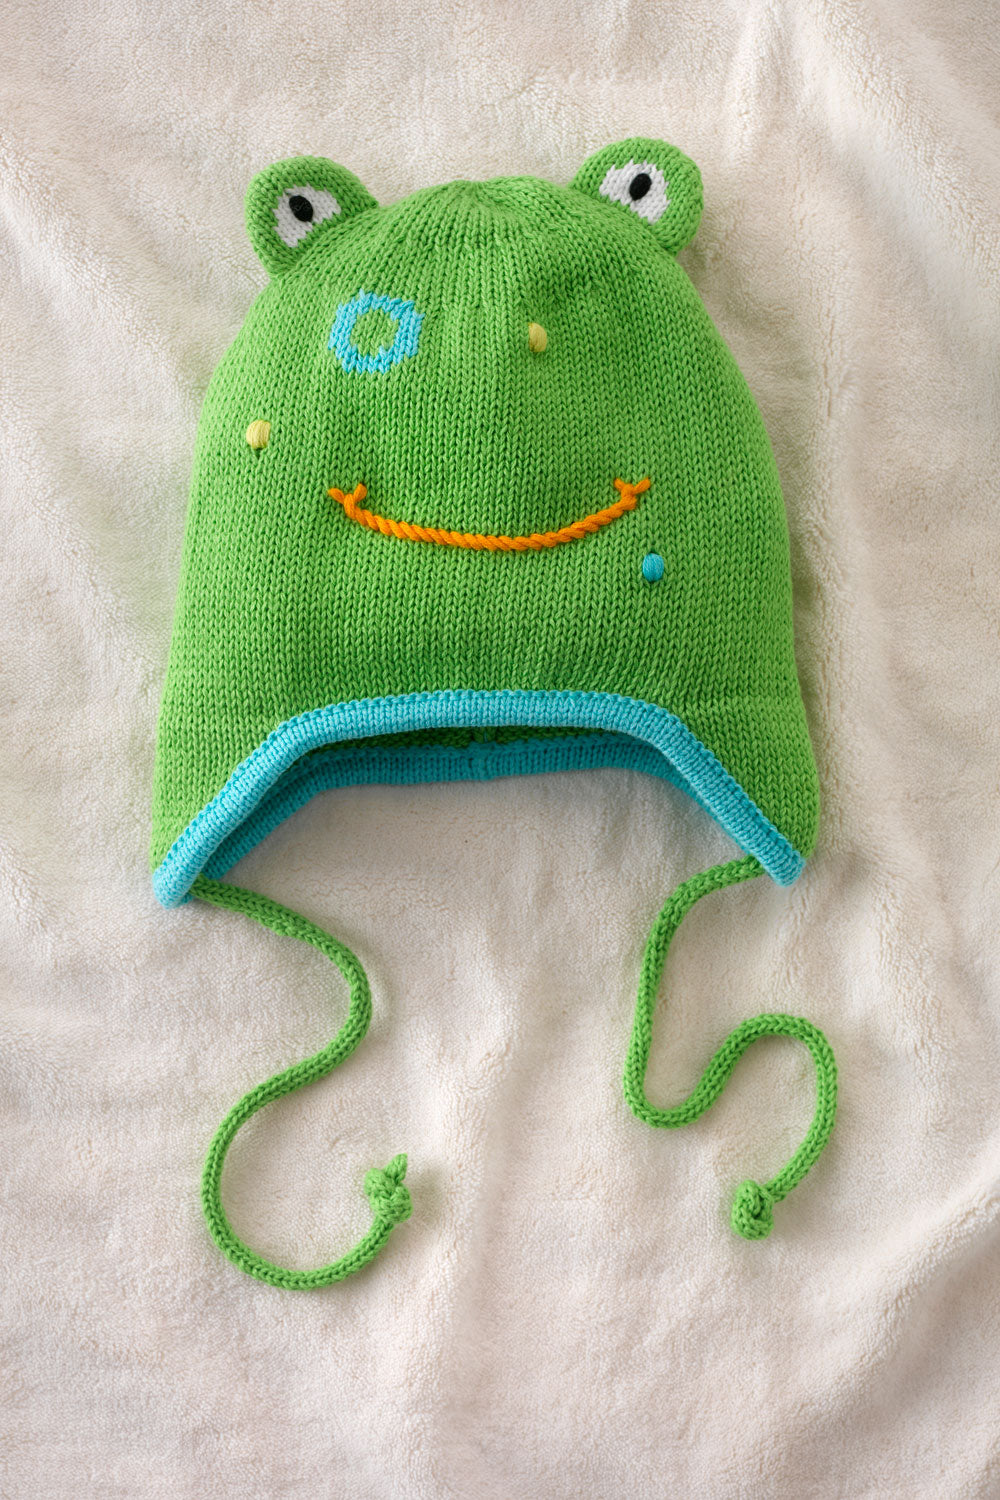 joobles-fair-trade-organic-baby-earflap-cap-flop-the-frog